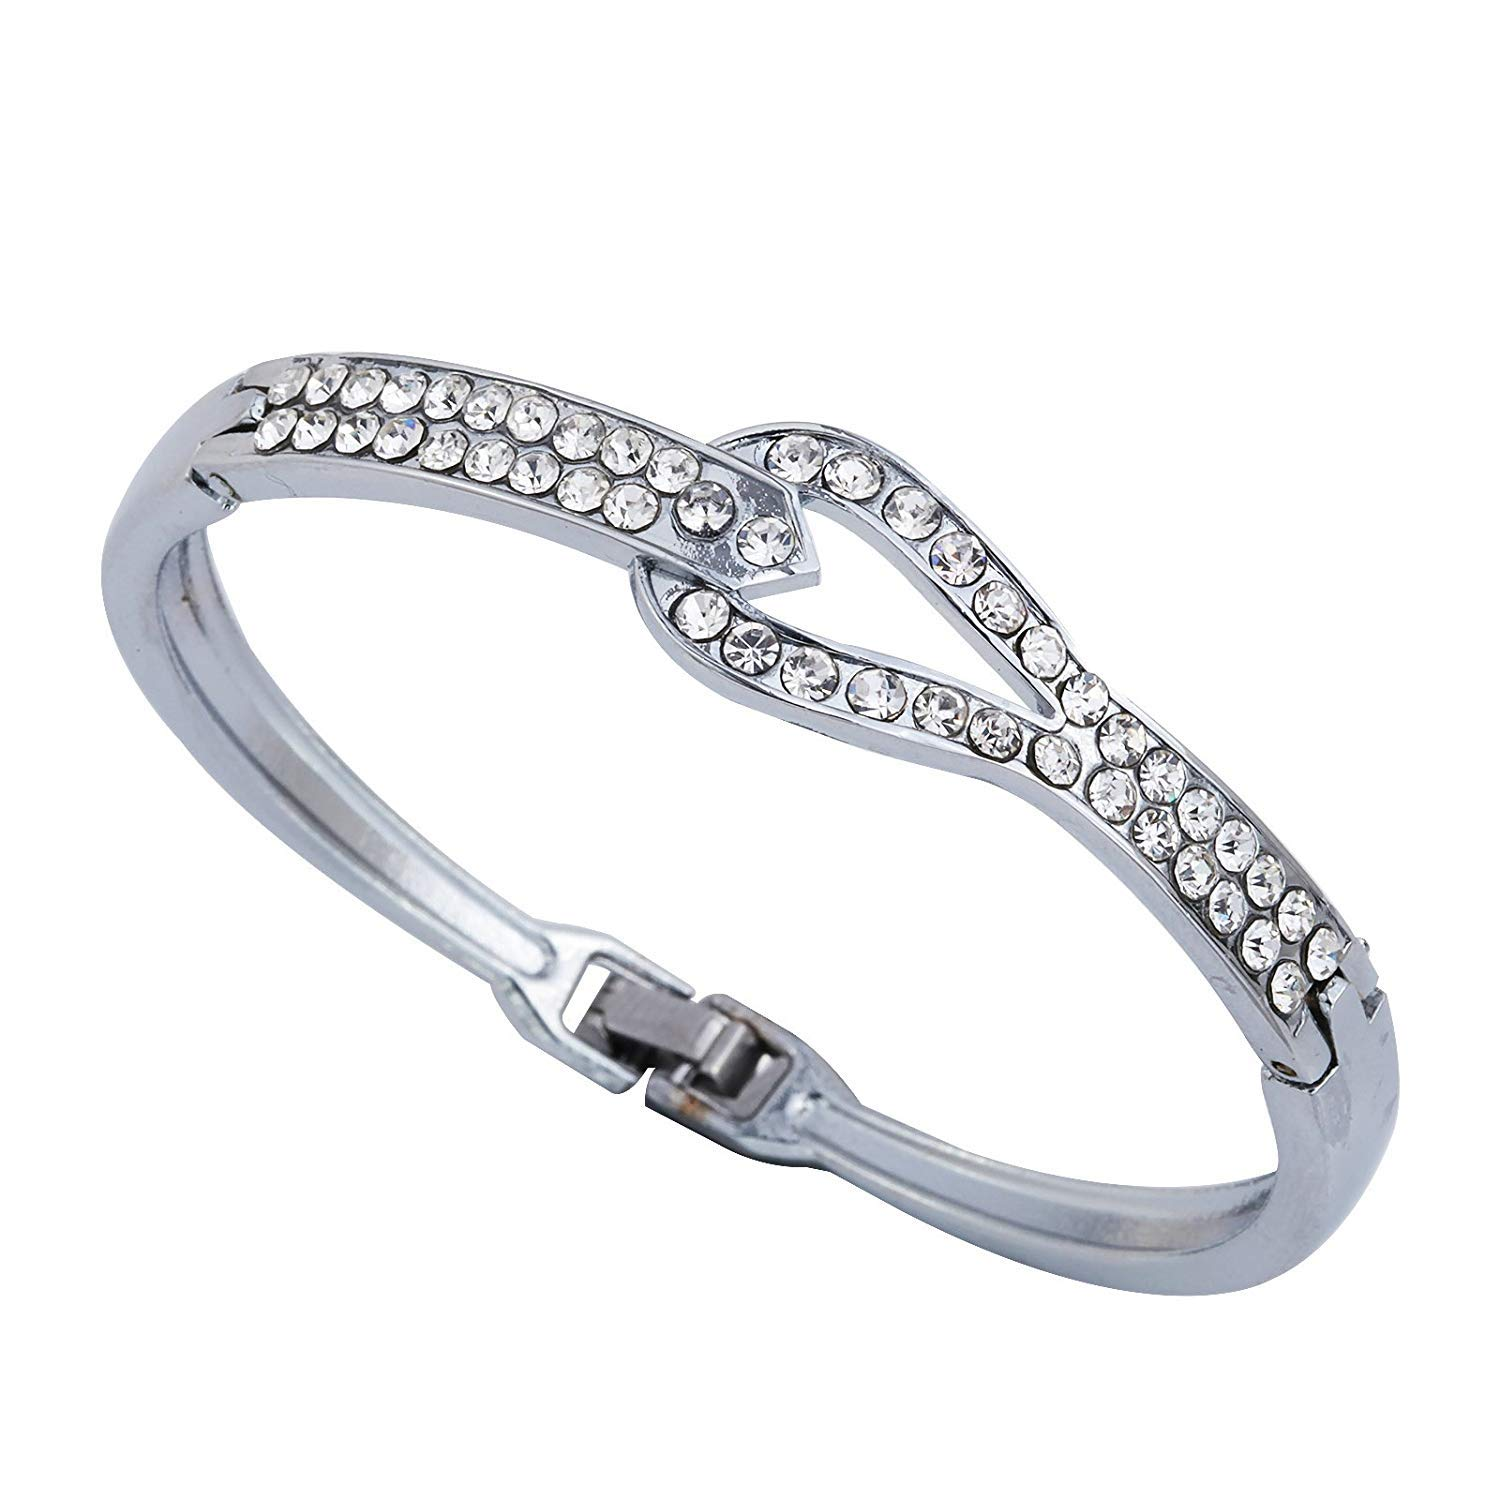 DVANIS Jewelry Silver Plated Clear Crystal Bangle Bracelet 2.2'' Women Gift